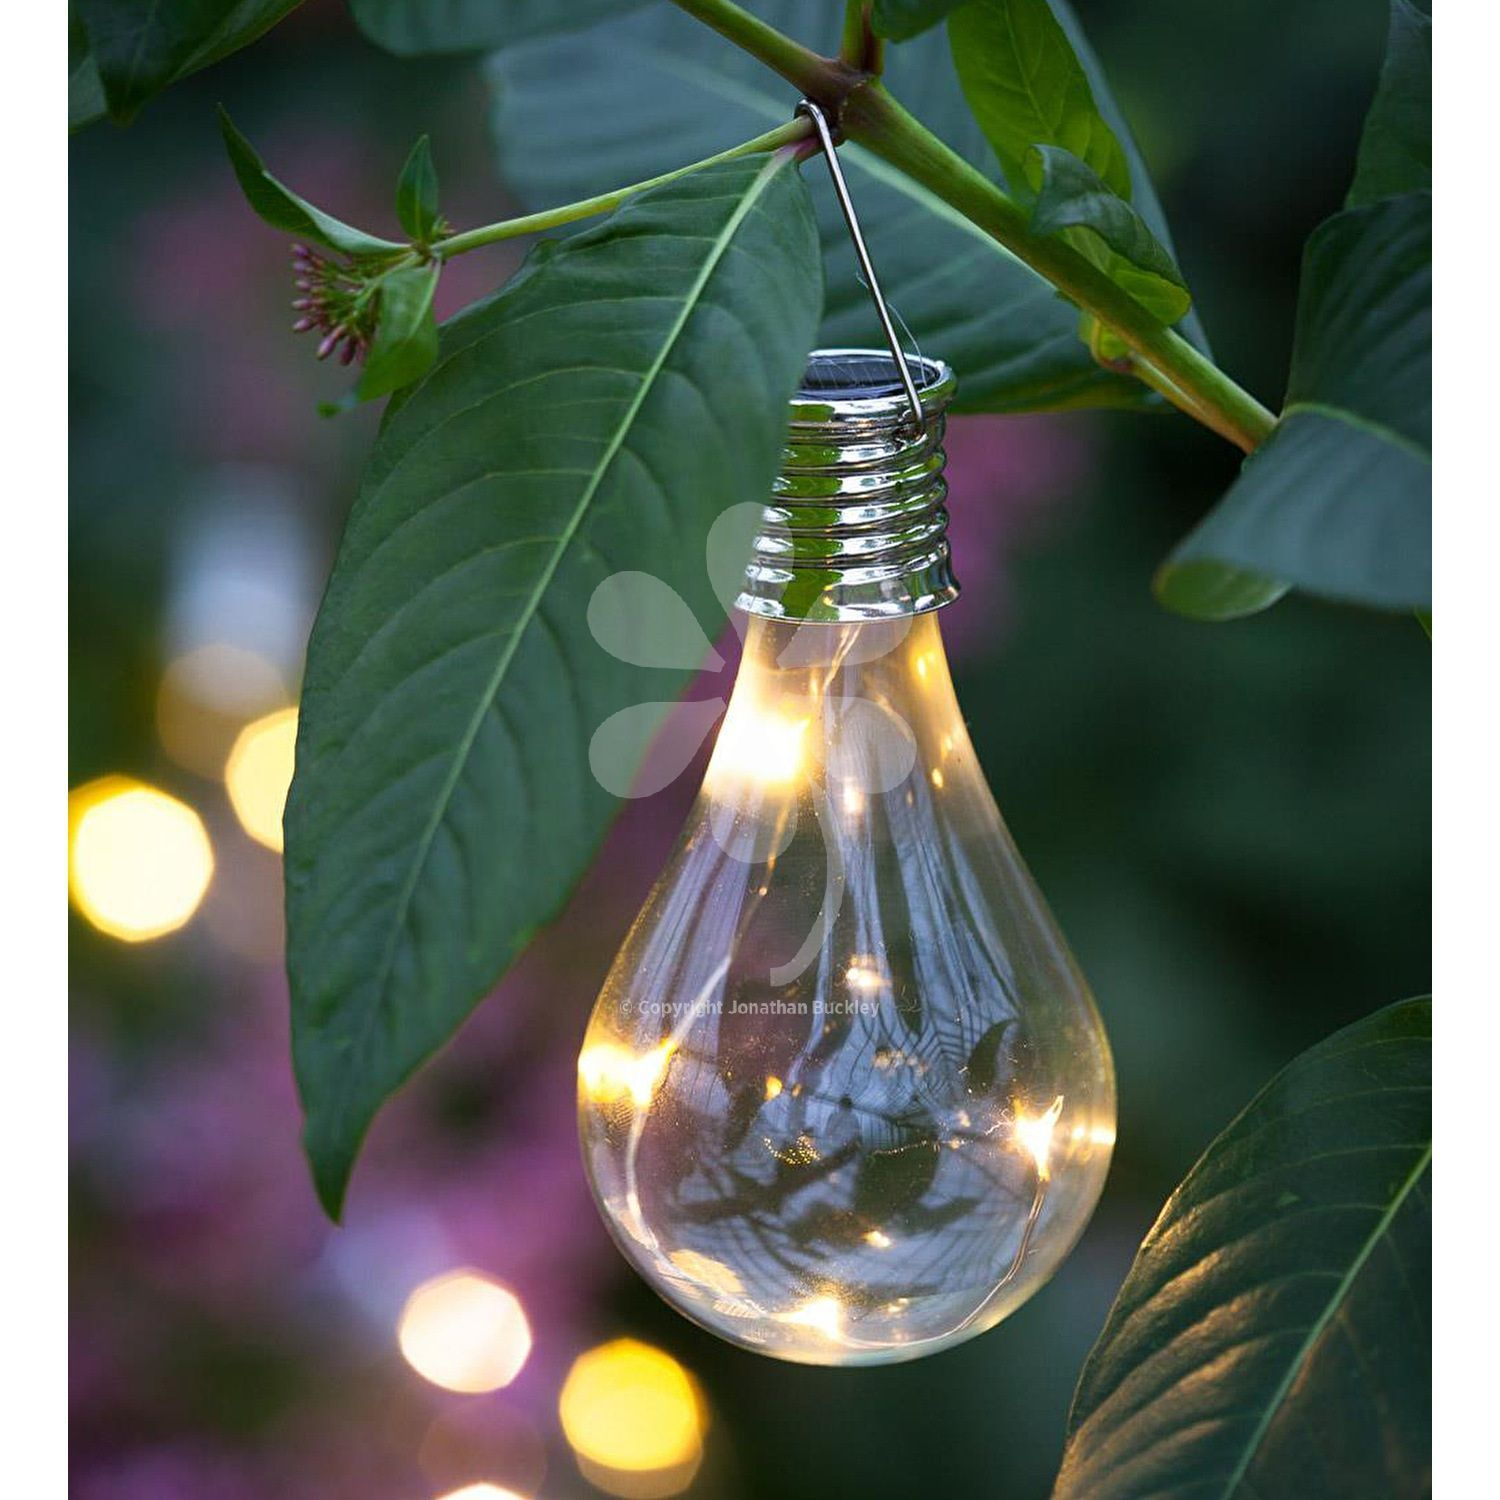 Shaped Like A Traditional Filament Light Bulbs To Hang In A Tree